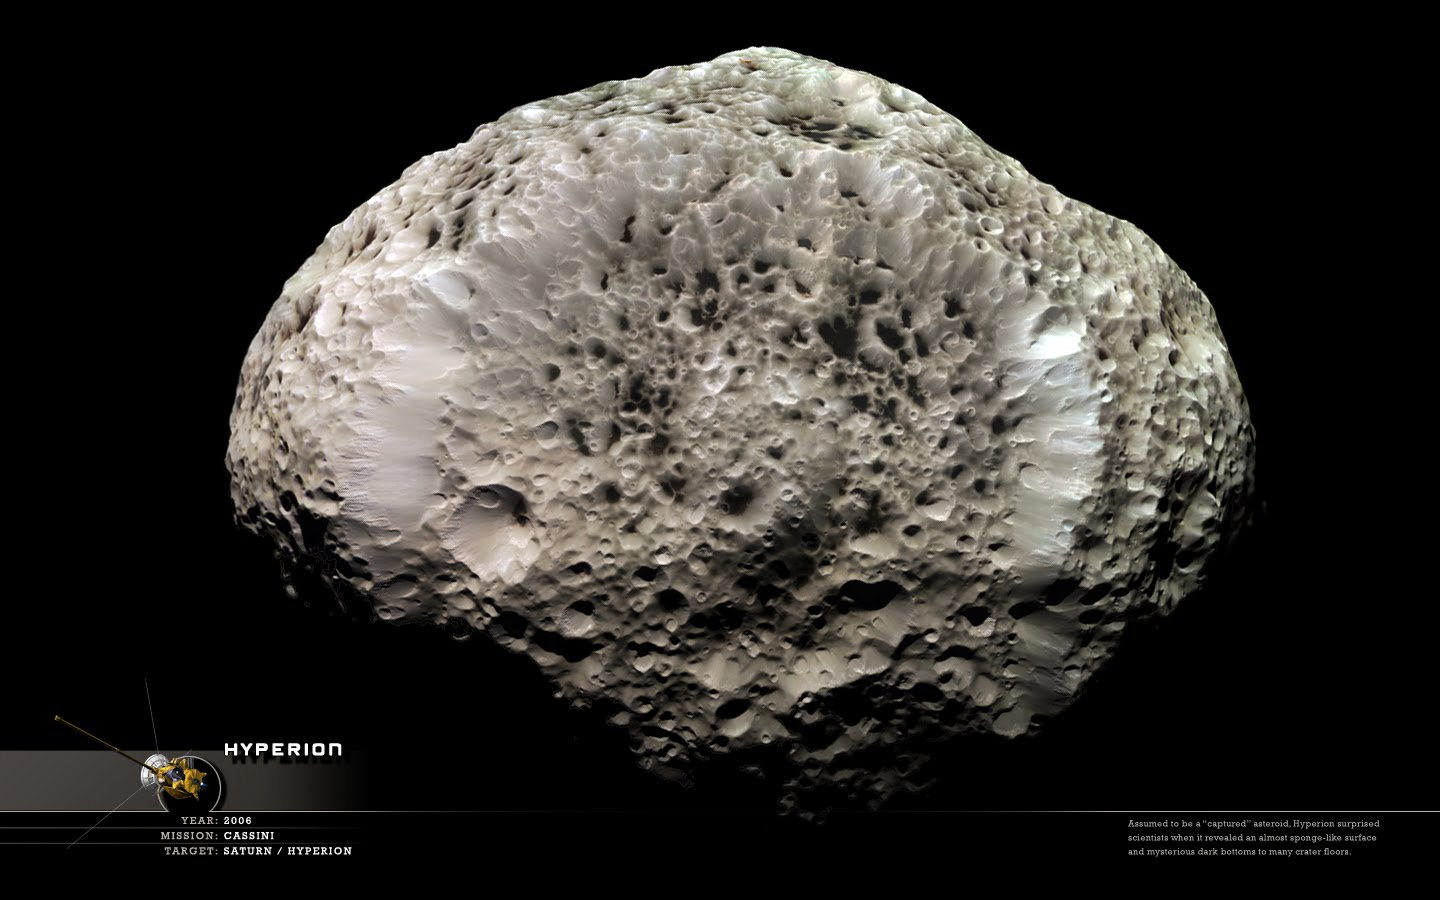 Miscellaneous Pics: Hyperion (moon)